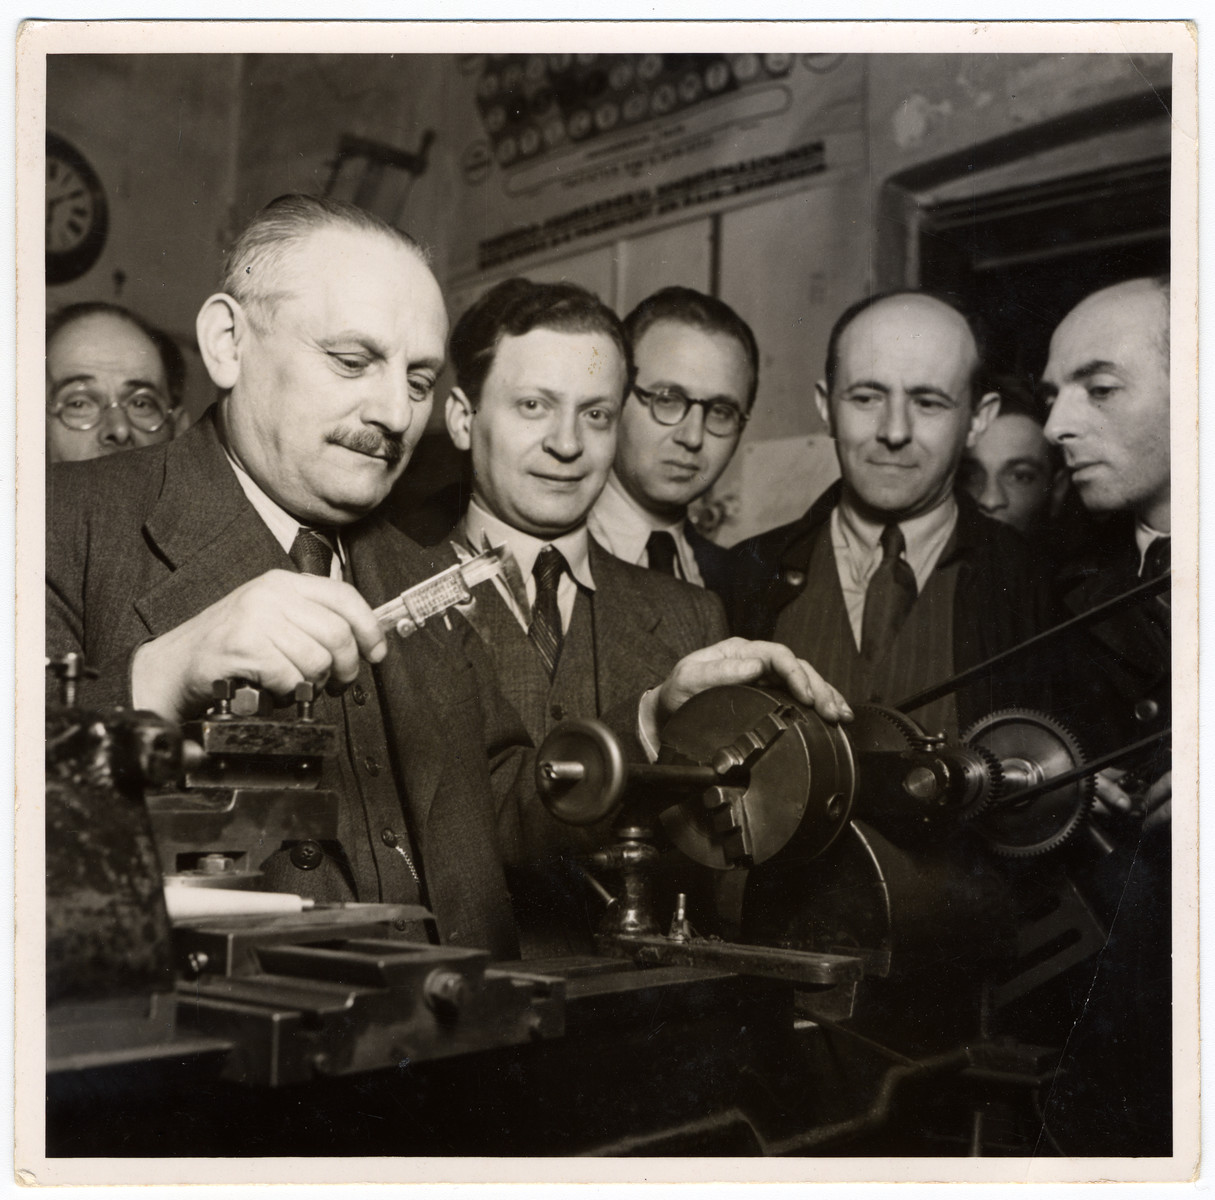 Viennese Jews learn typewriting repair in an ORT vocational school following the Nazi take-over of Austria.  Franz Edelschein is among those pictured.